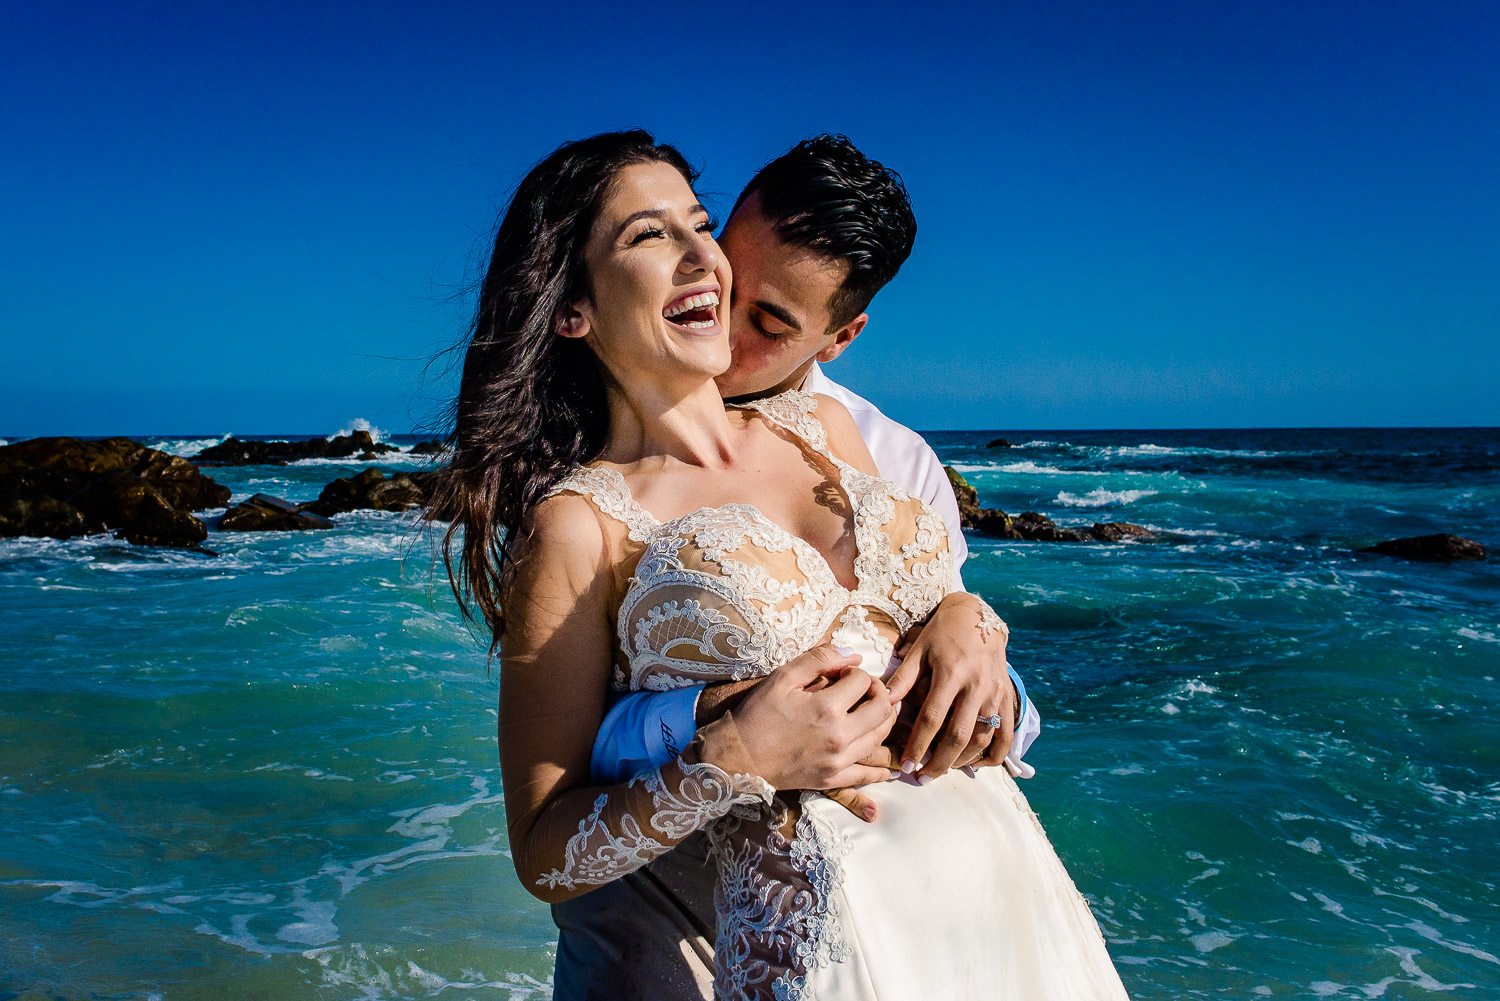 Bride and groom during her trash the dress session in Los Cabos. Both of them are laughing as the groom is holding his beautiful bride from behind on the beach